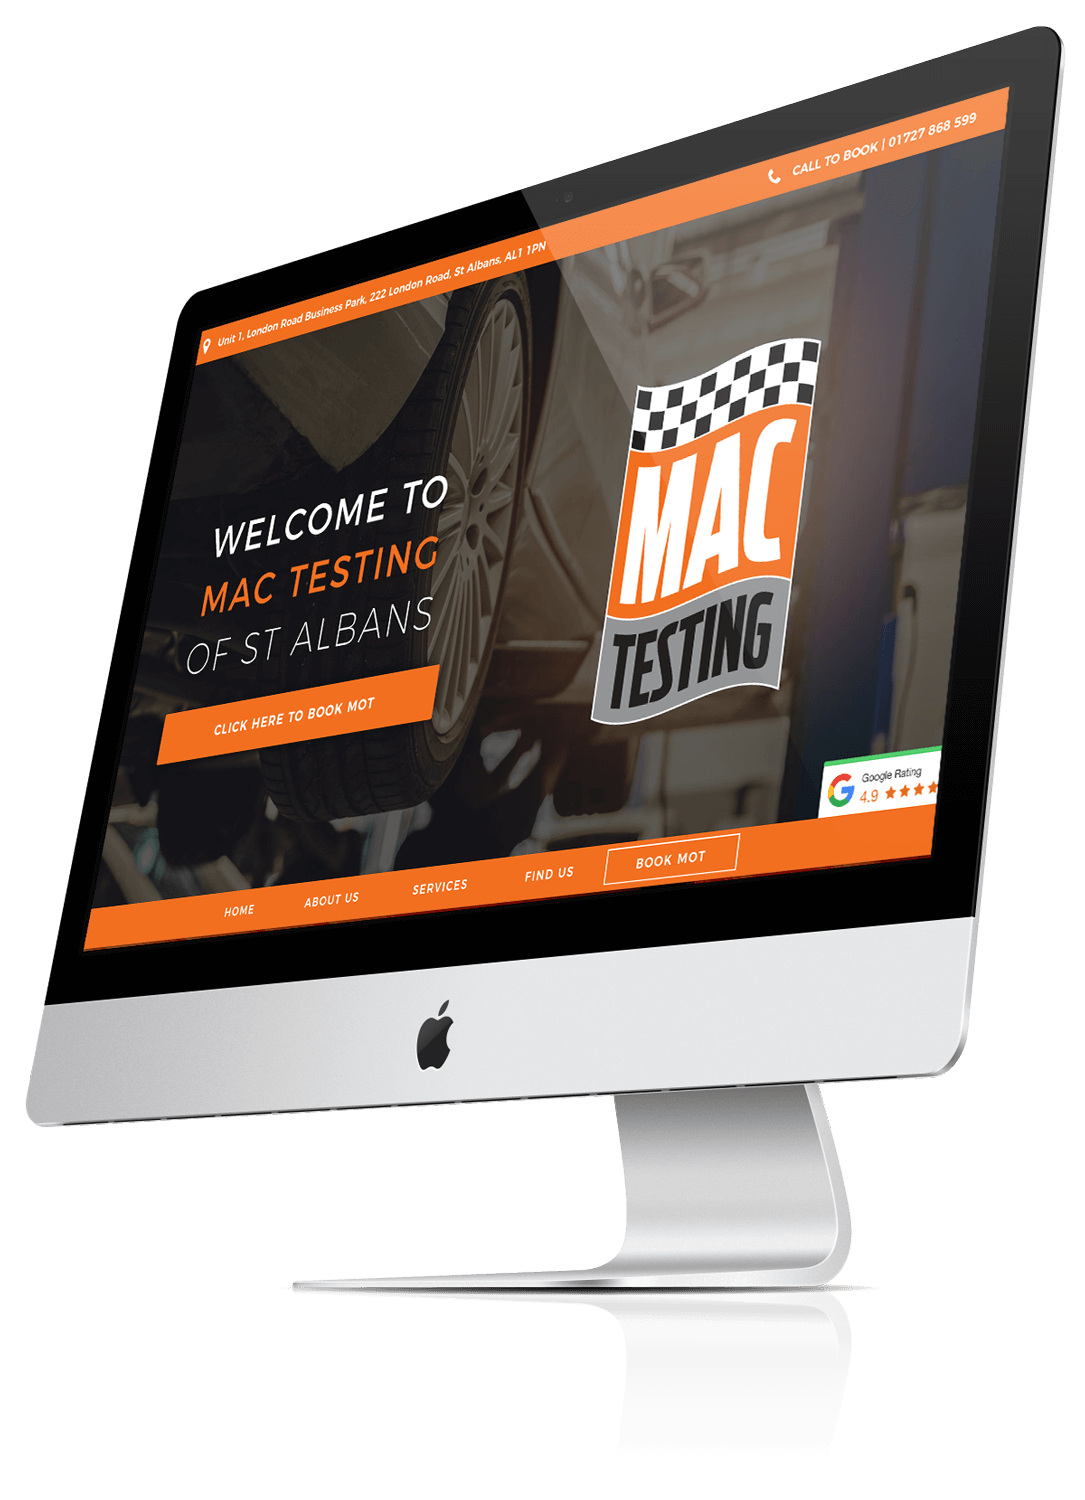 iMac Mock up of Mac Testing of St Albans